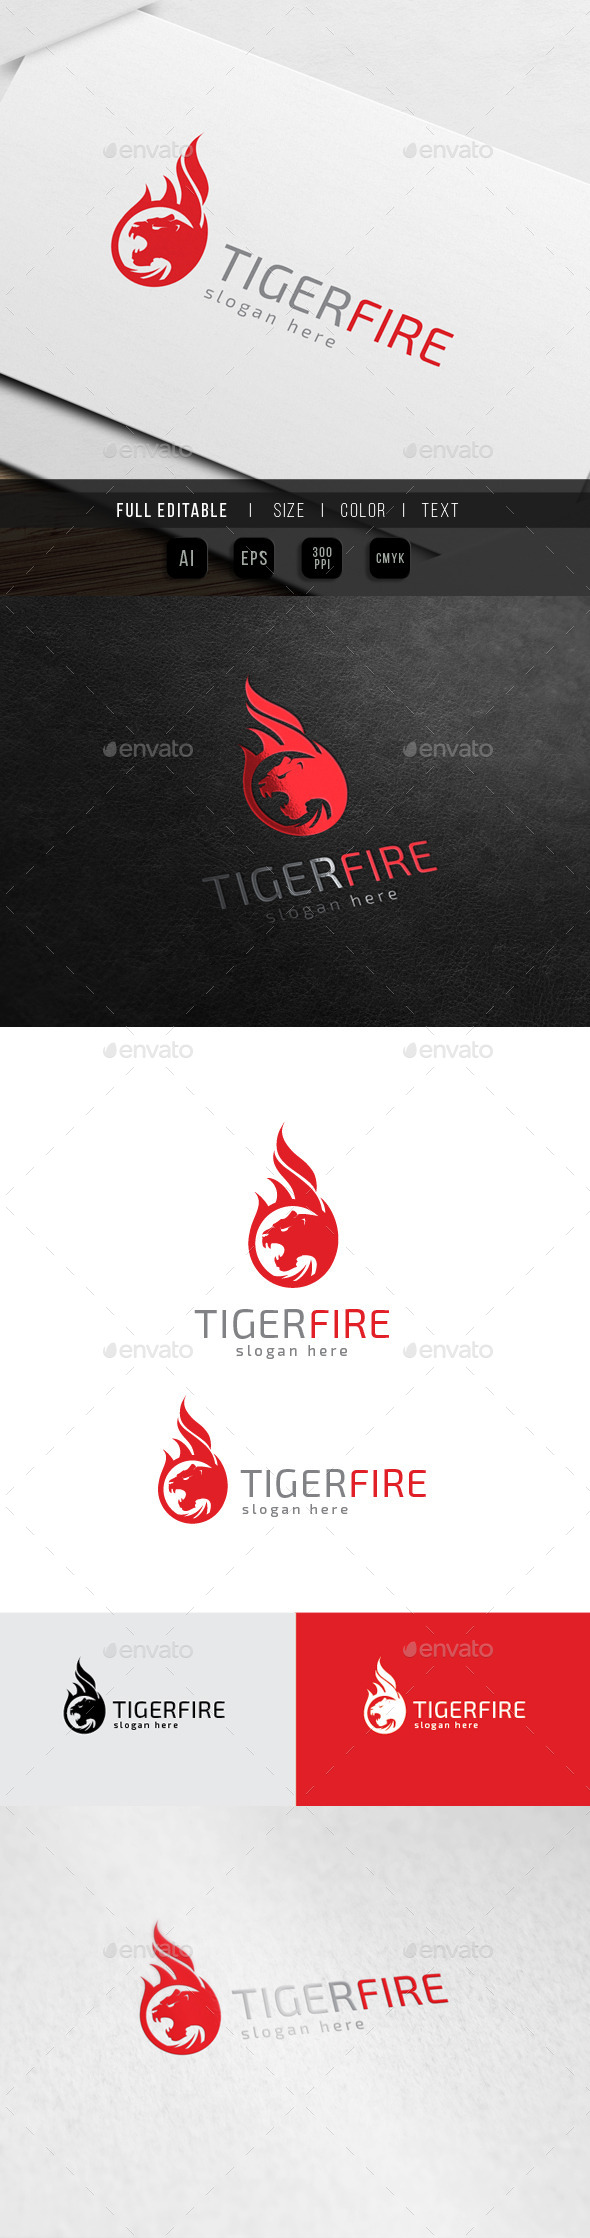 Tiger Fire - Panther Flame - Animals Logo Templates